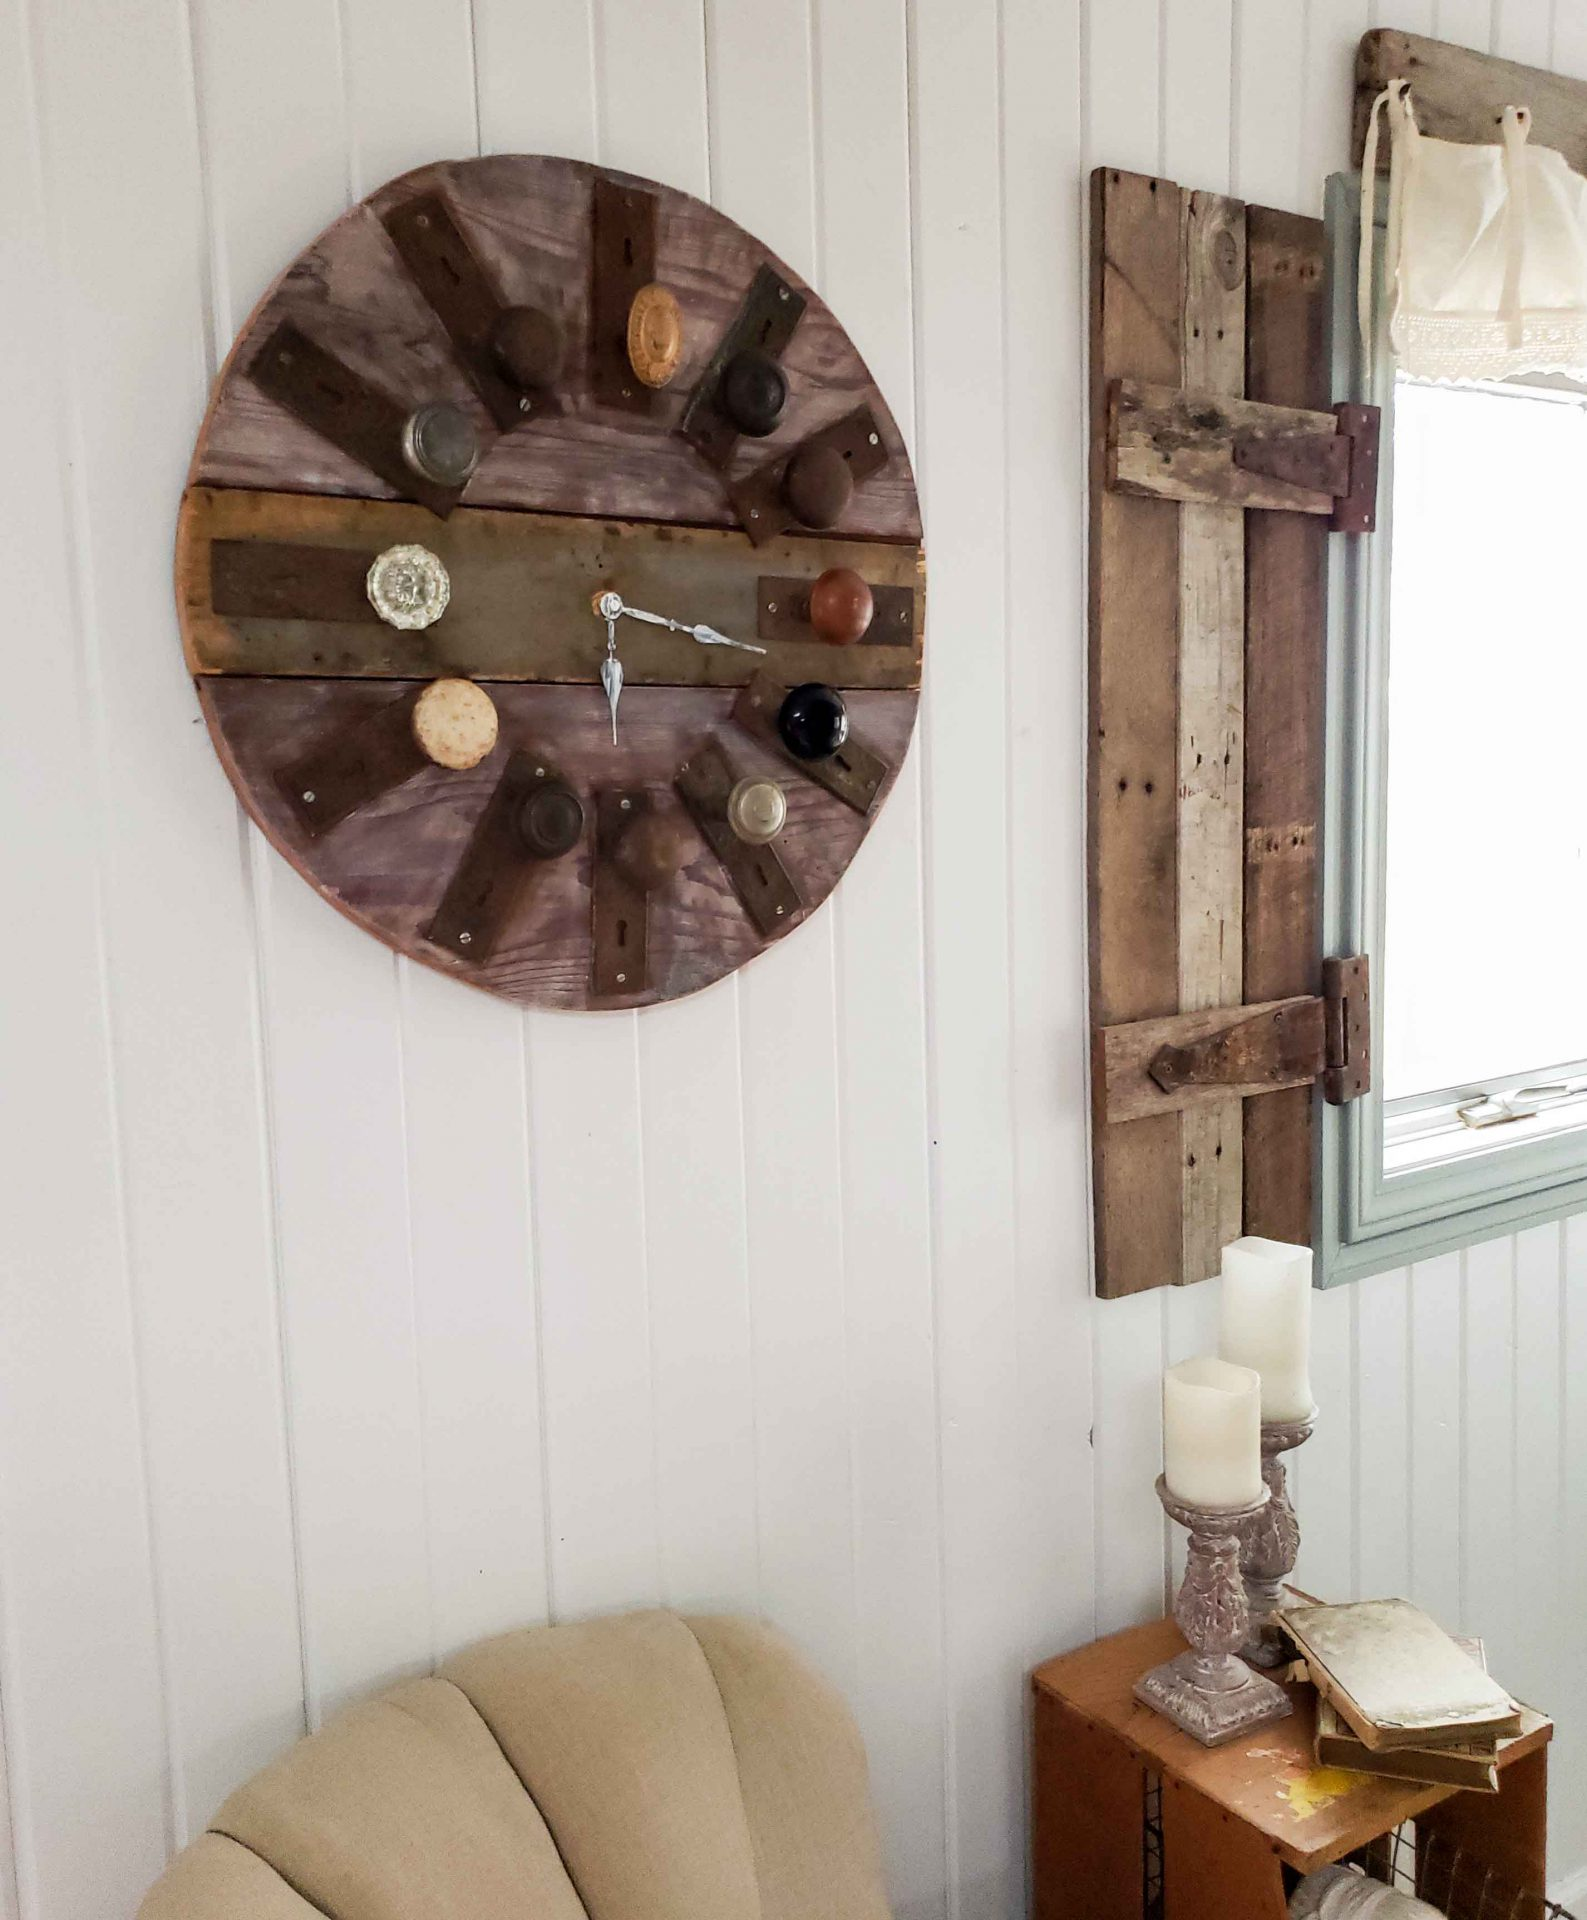 Rustic Farmhouse Handmade Wall Clock for Architectural Salvage by Larissa of Prodigal Pieces | prodigalpieces.com #prodigalpieces #handmade #home #farmhouse #homedecor #industrial